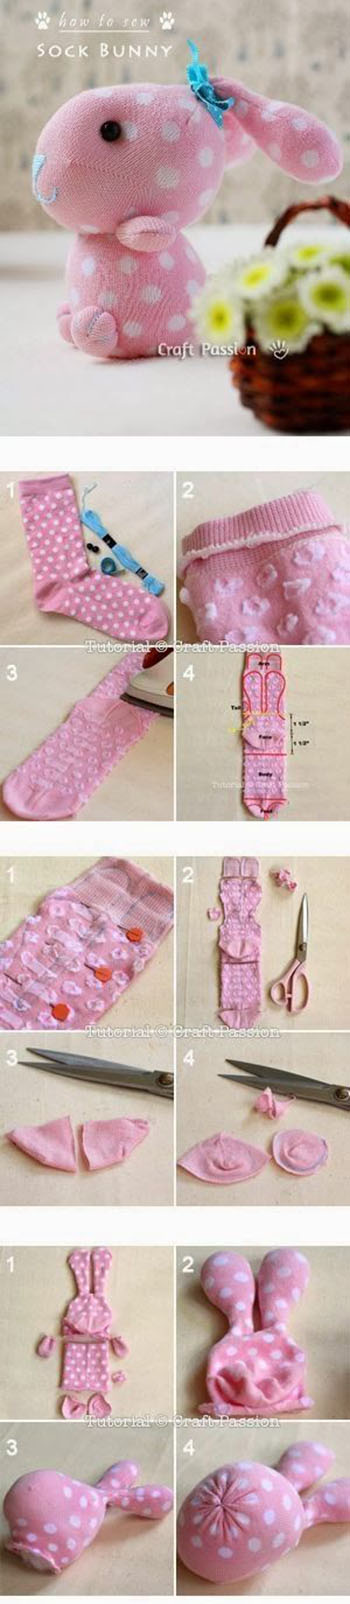 Sock Bunny Craft Tutorial11